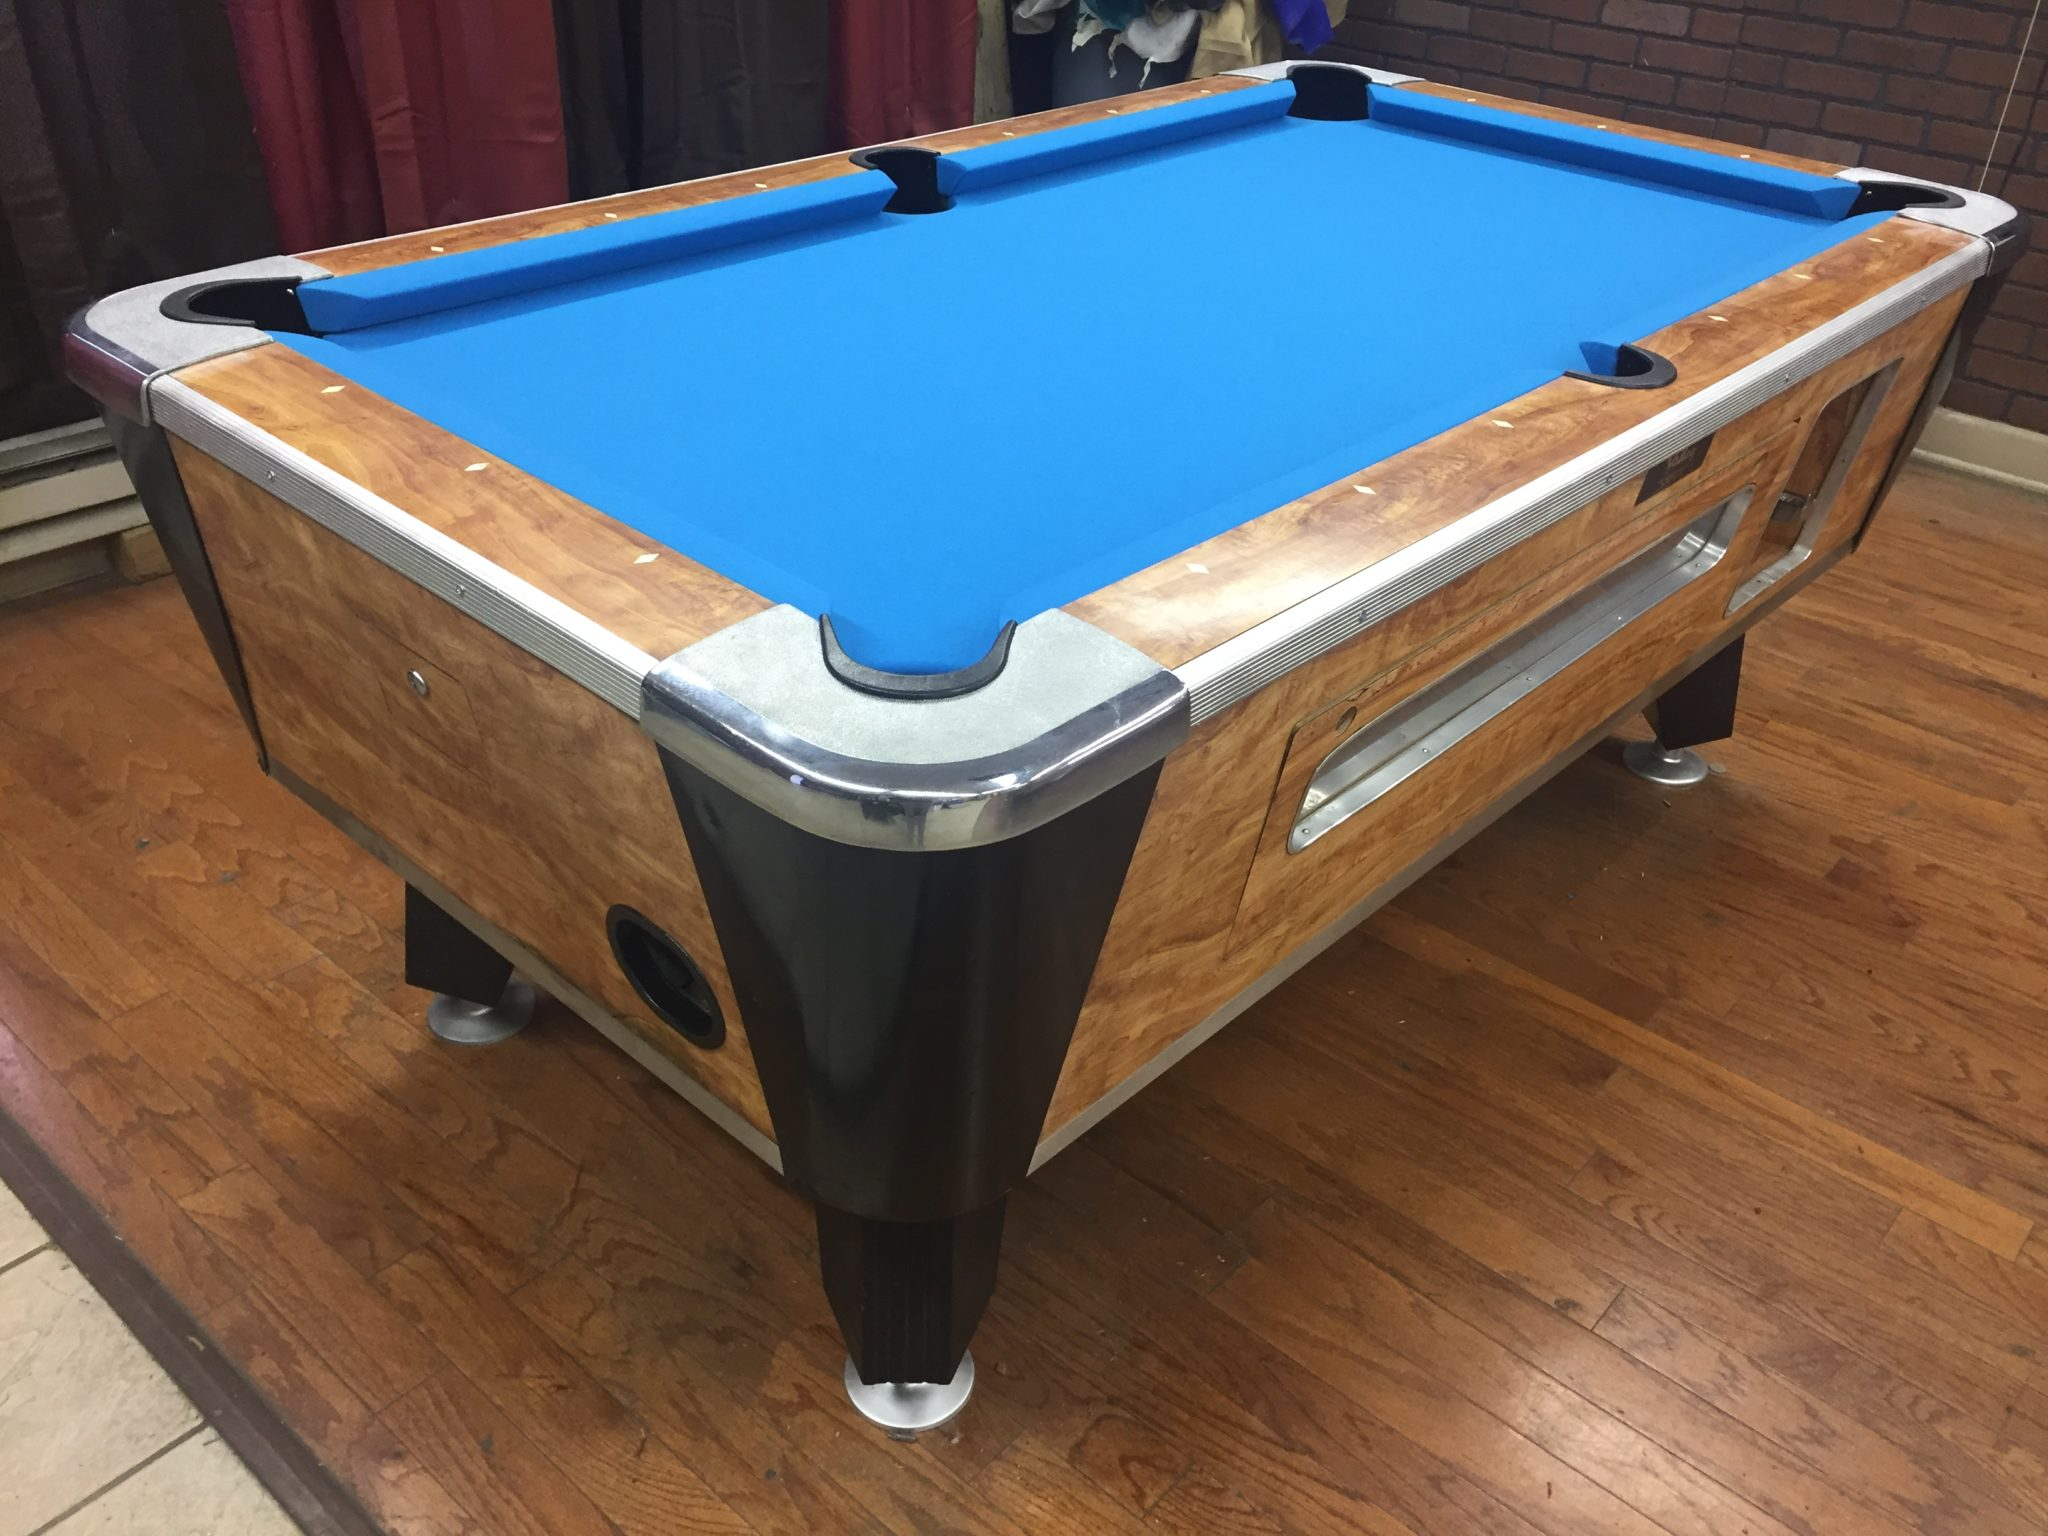 fairfax tables amf chesapeake pool billiards products table used image